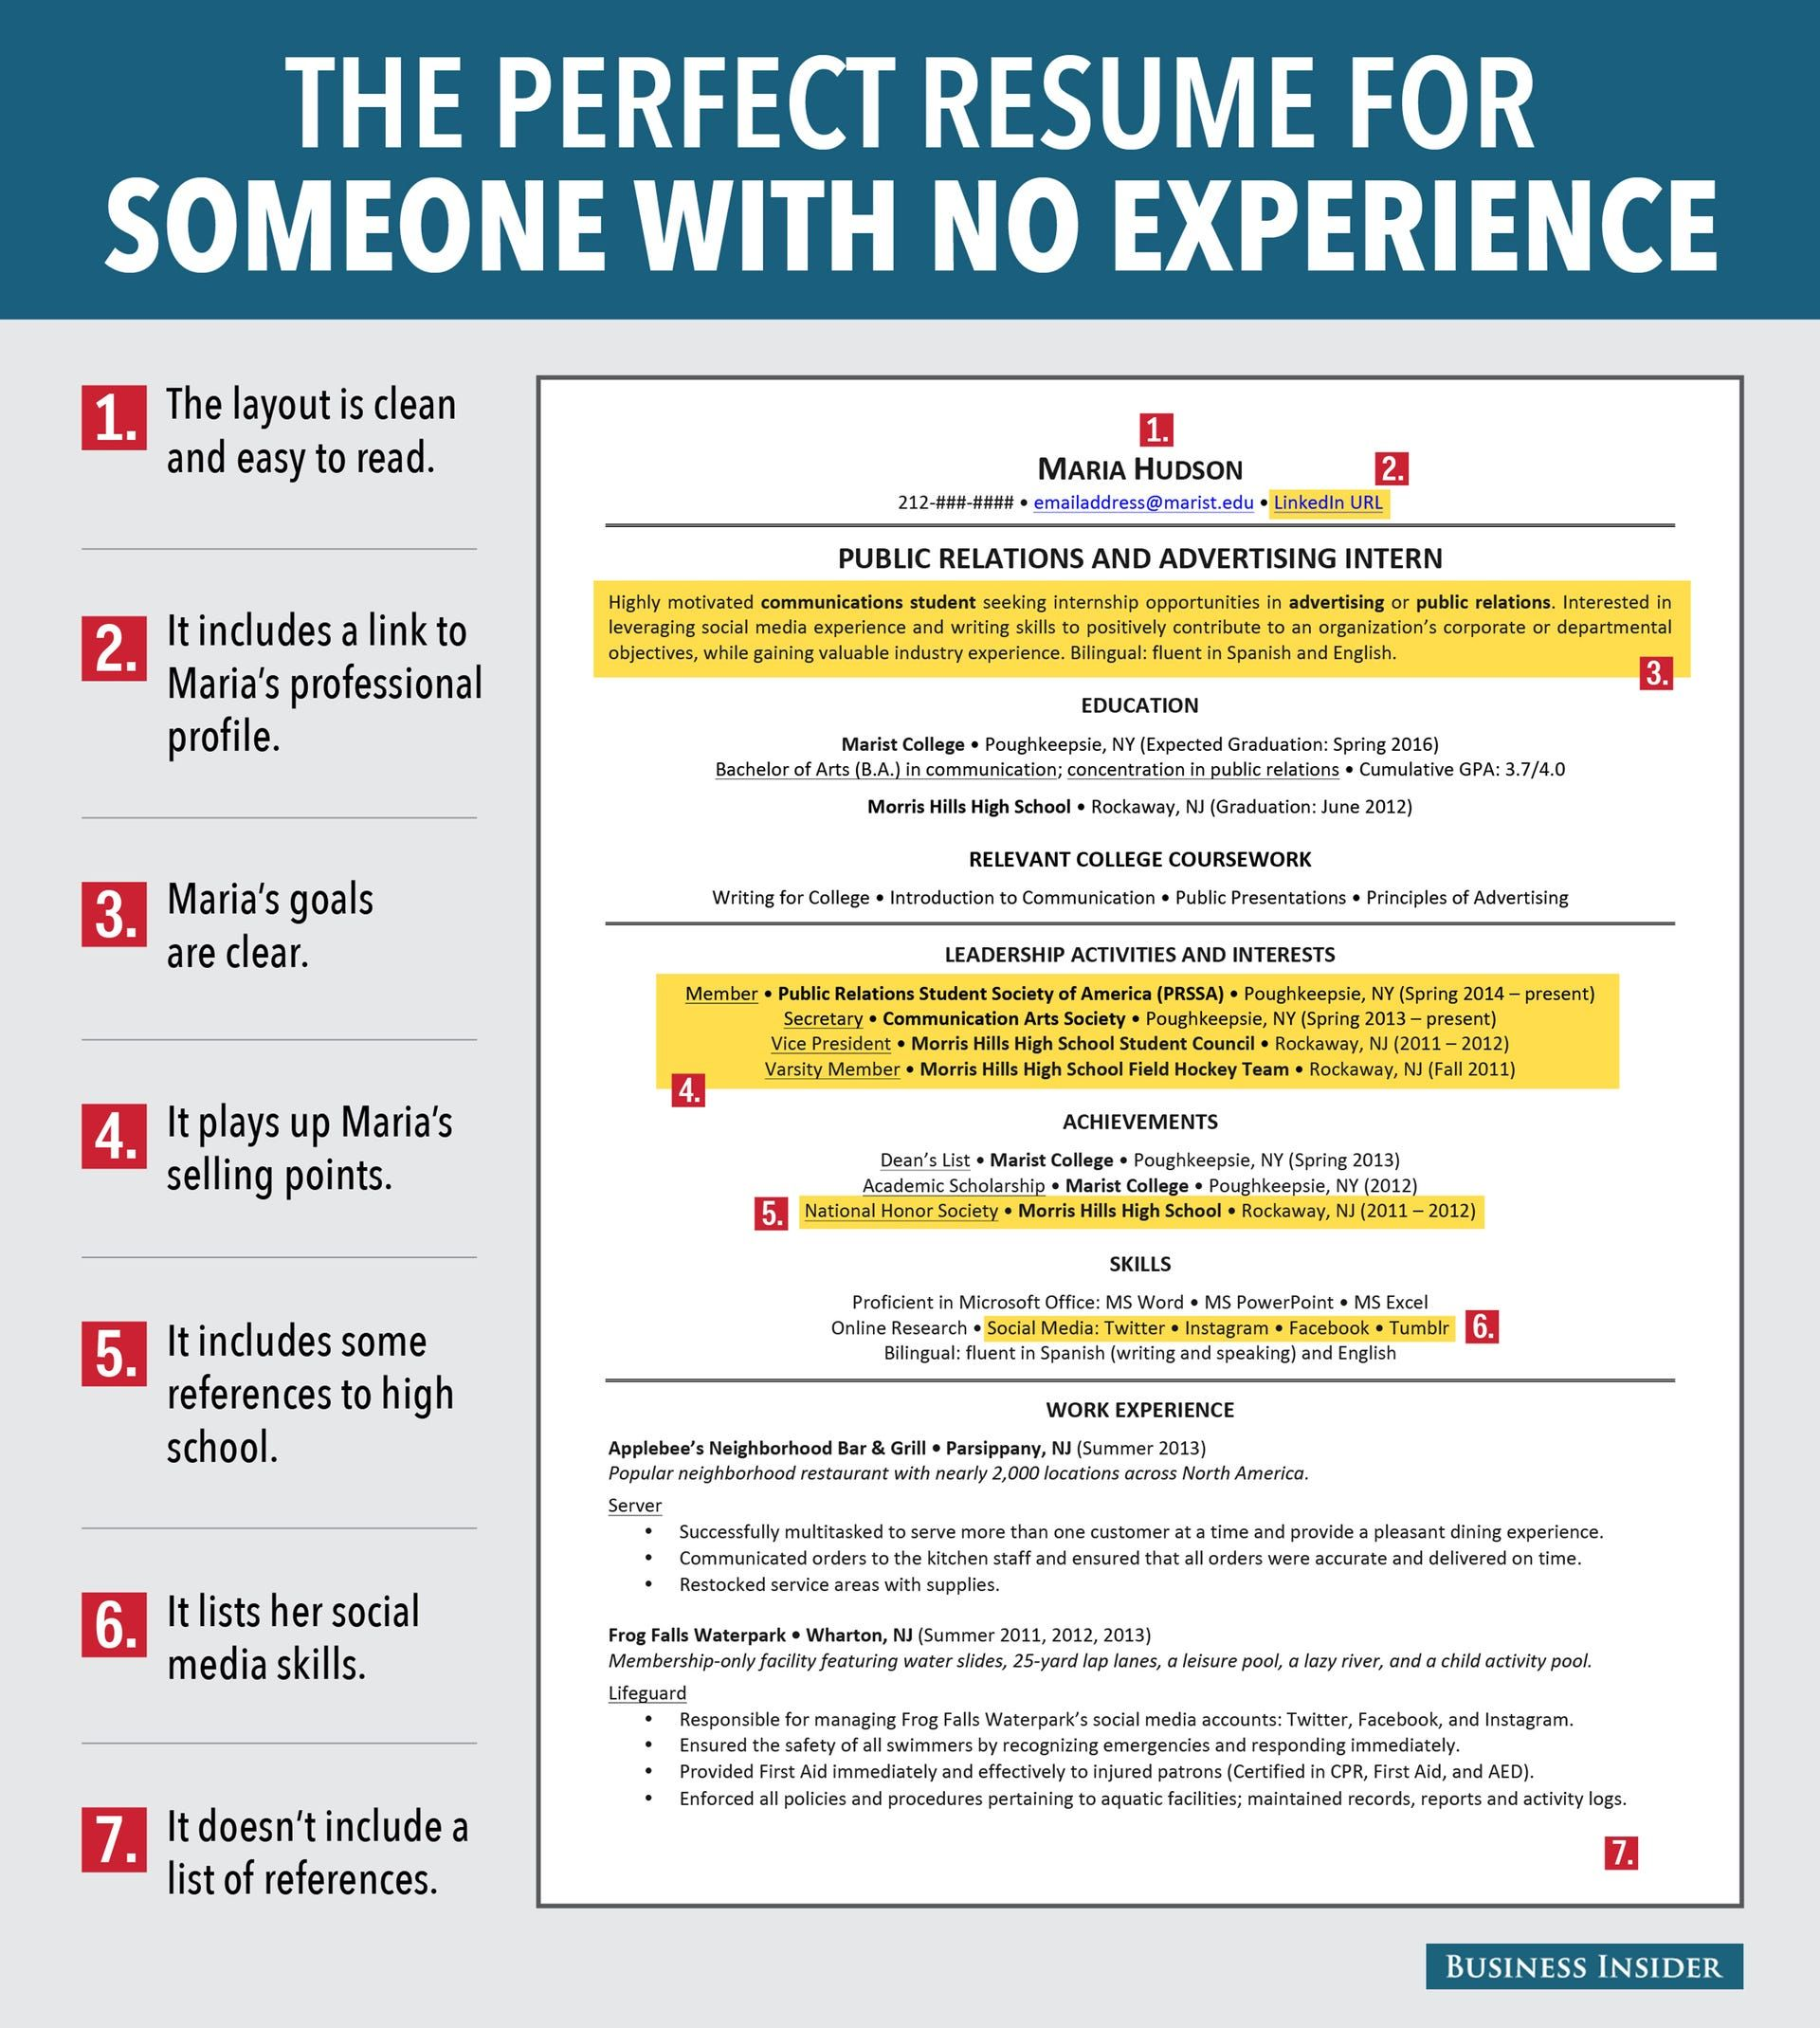 Work Experience Resume Sample Of Reasons This is the Ideal Resume for someone with No Work Experience Business Insider